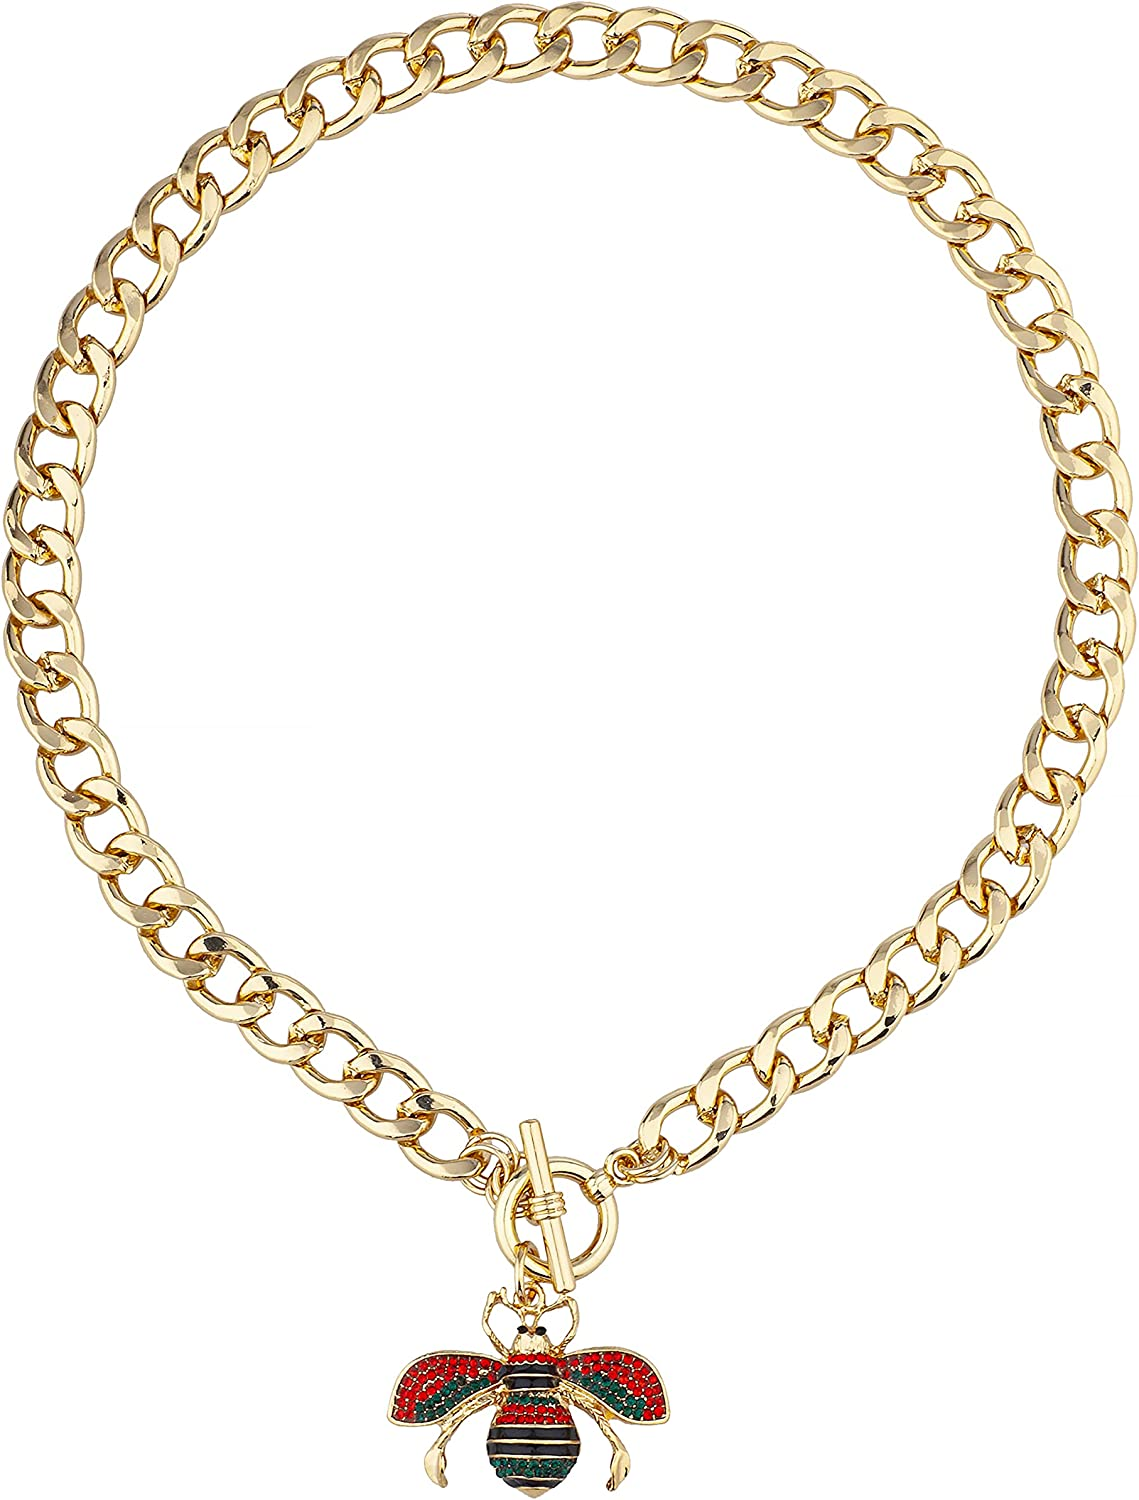 JOTW Goldtone Bee Cham with 10mm Toggle Cuban 17 inch Chain Necklace